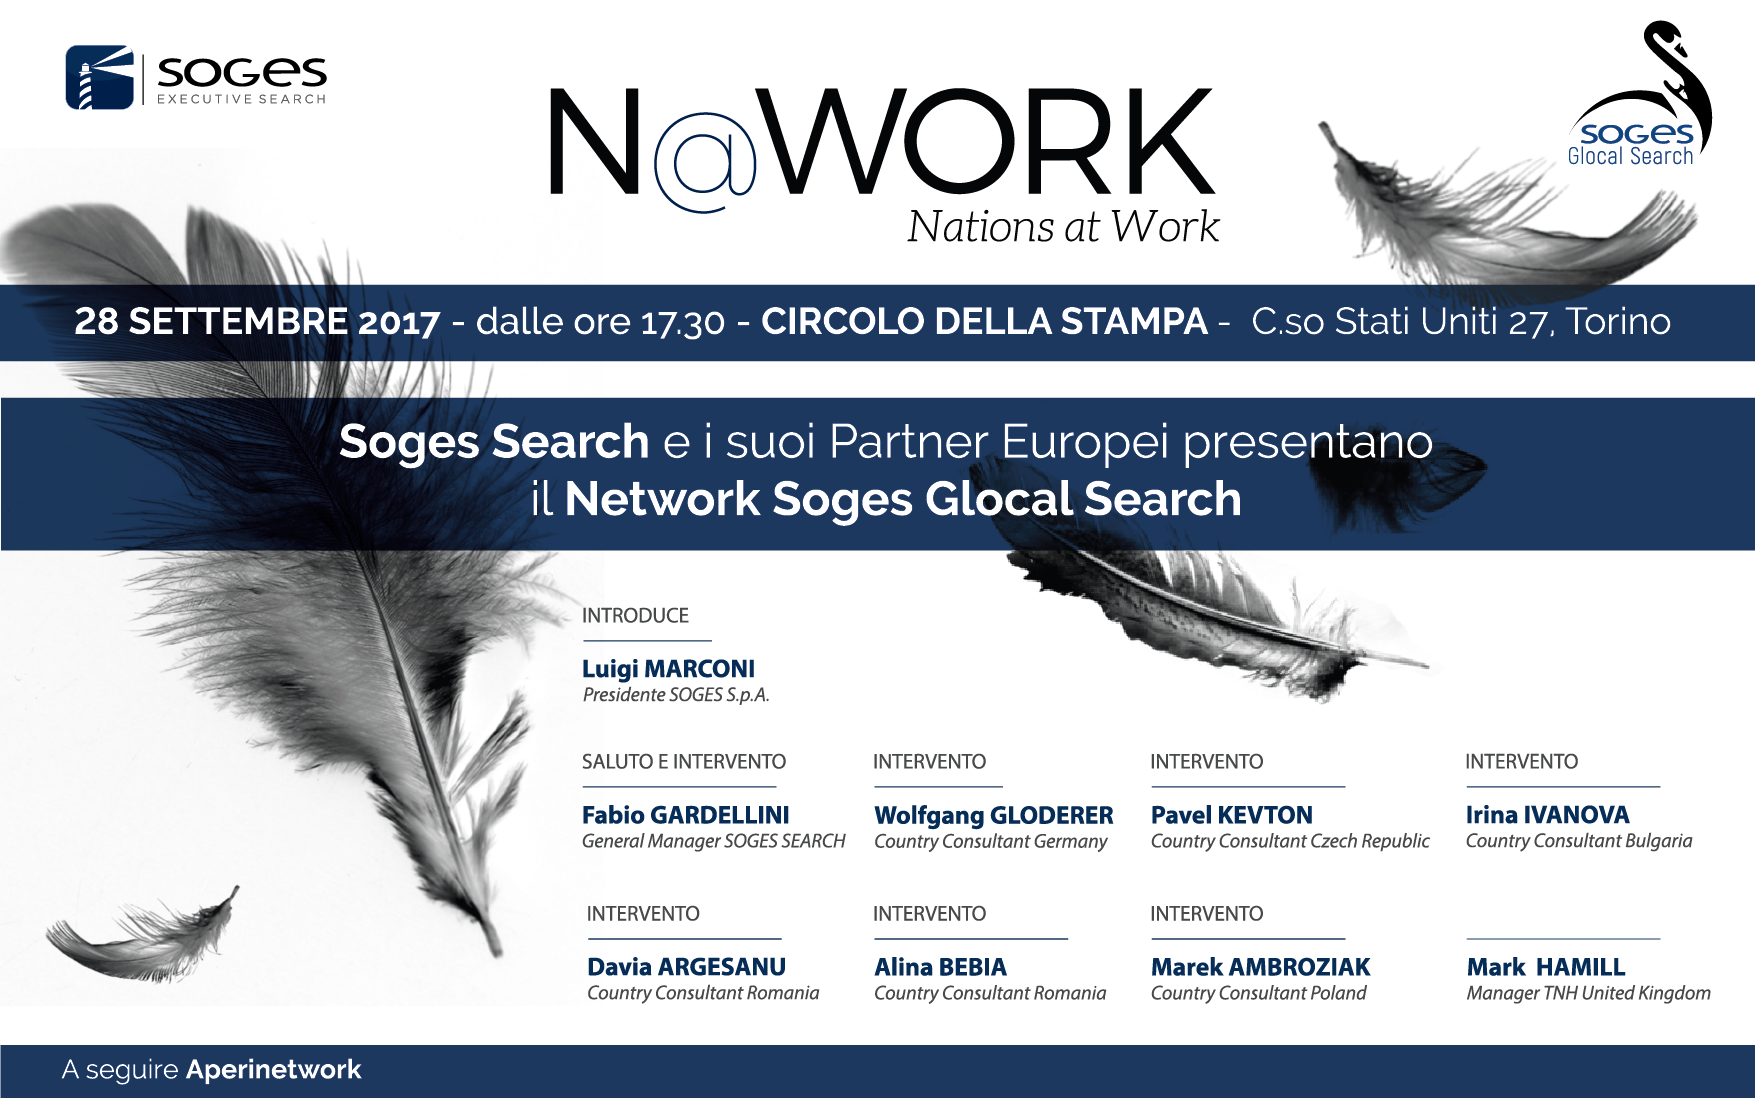 NETWORK SOGES Glocal Search